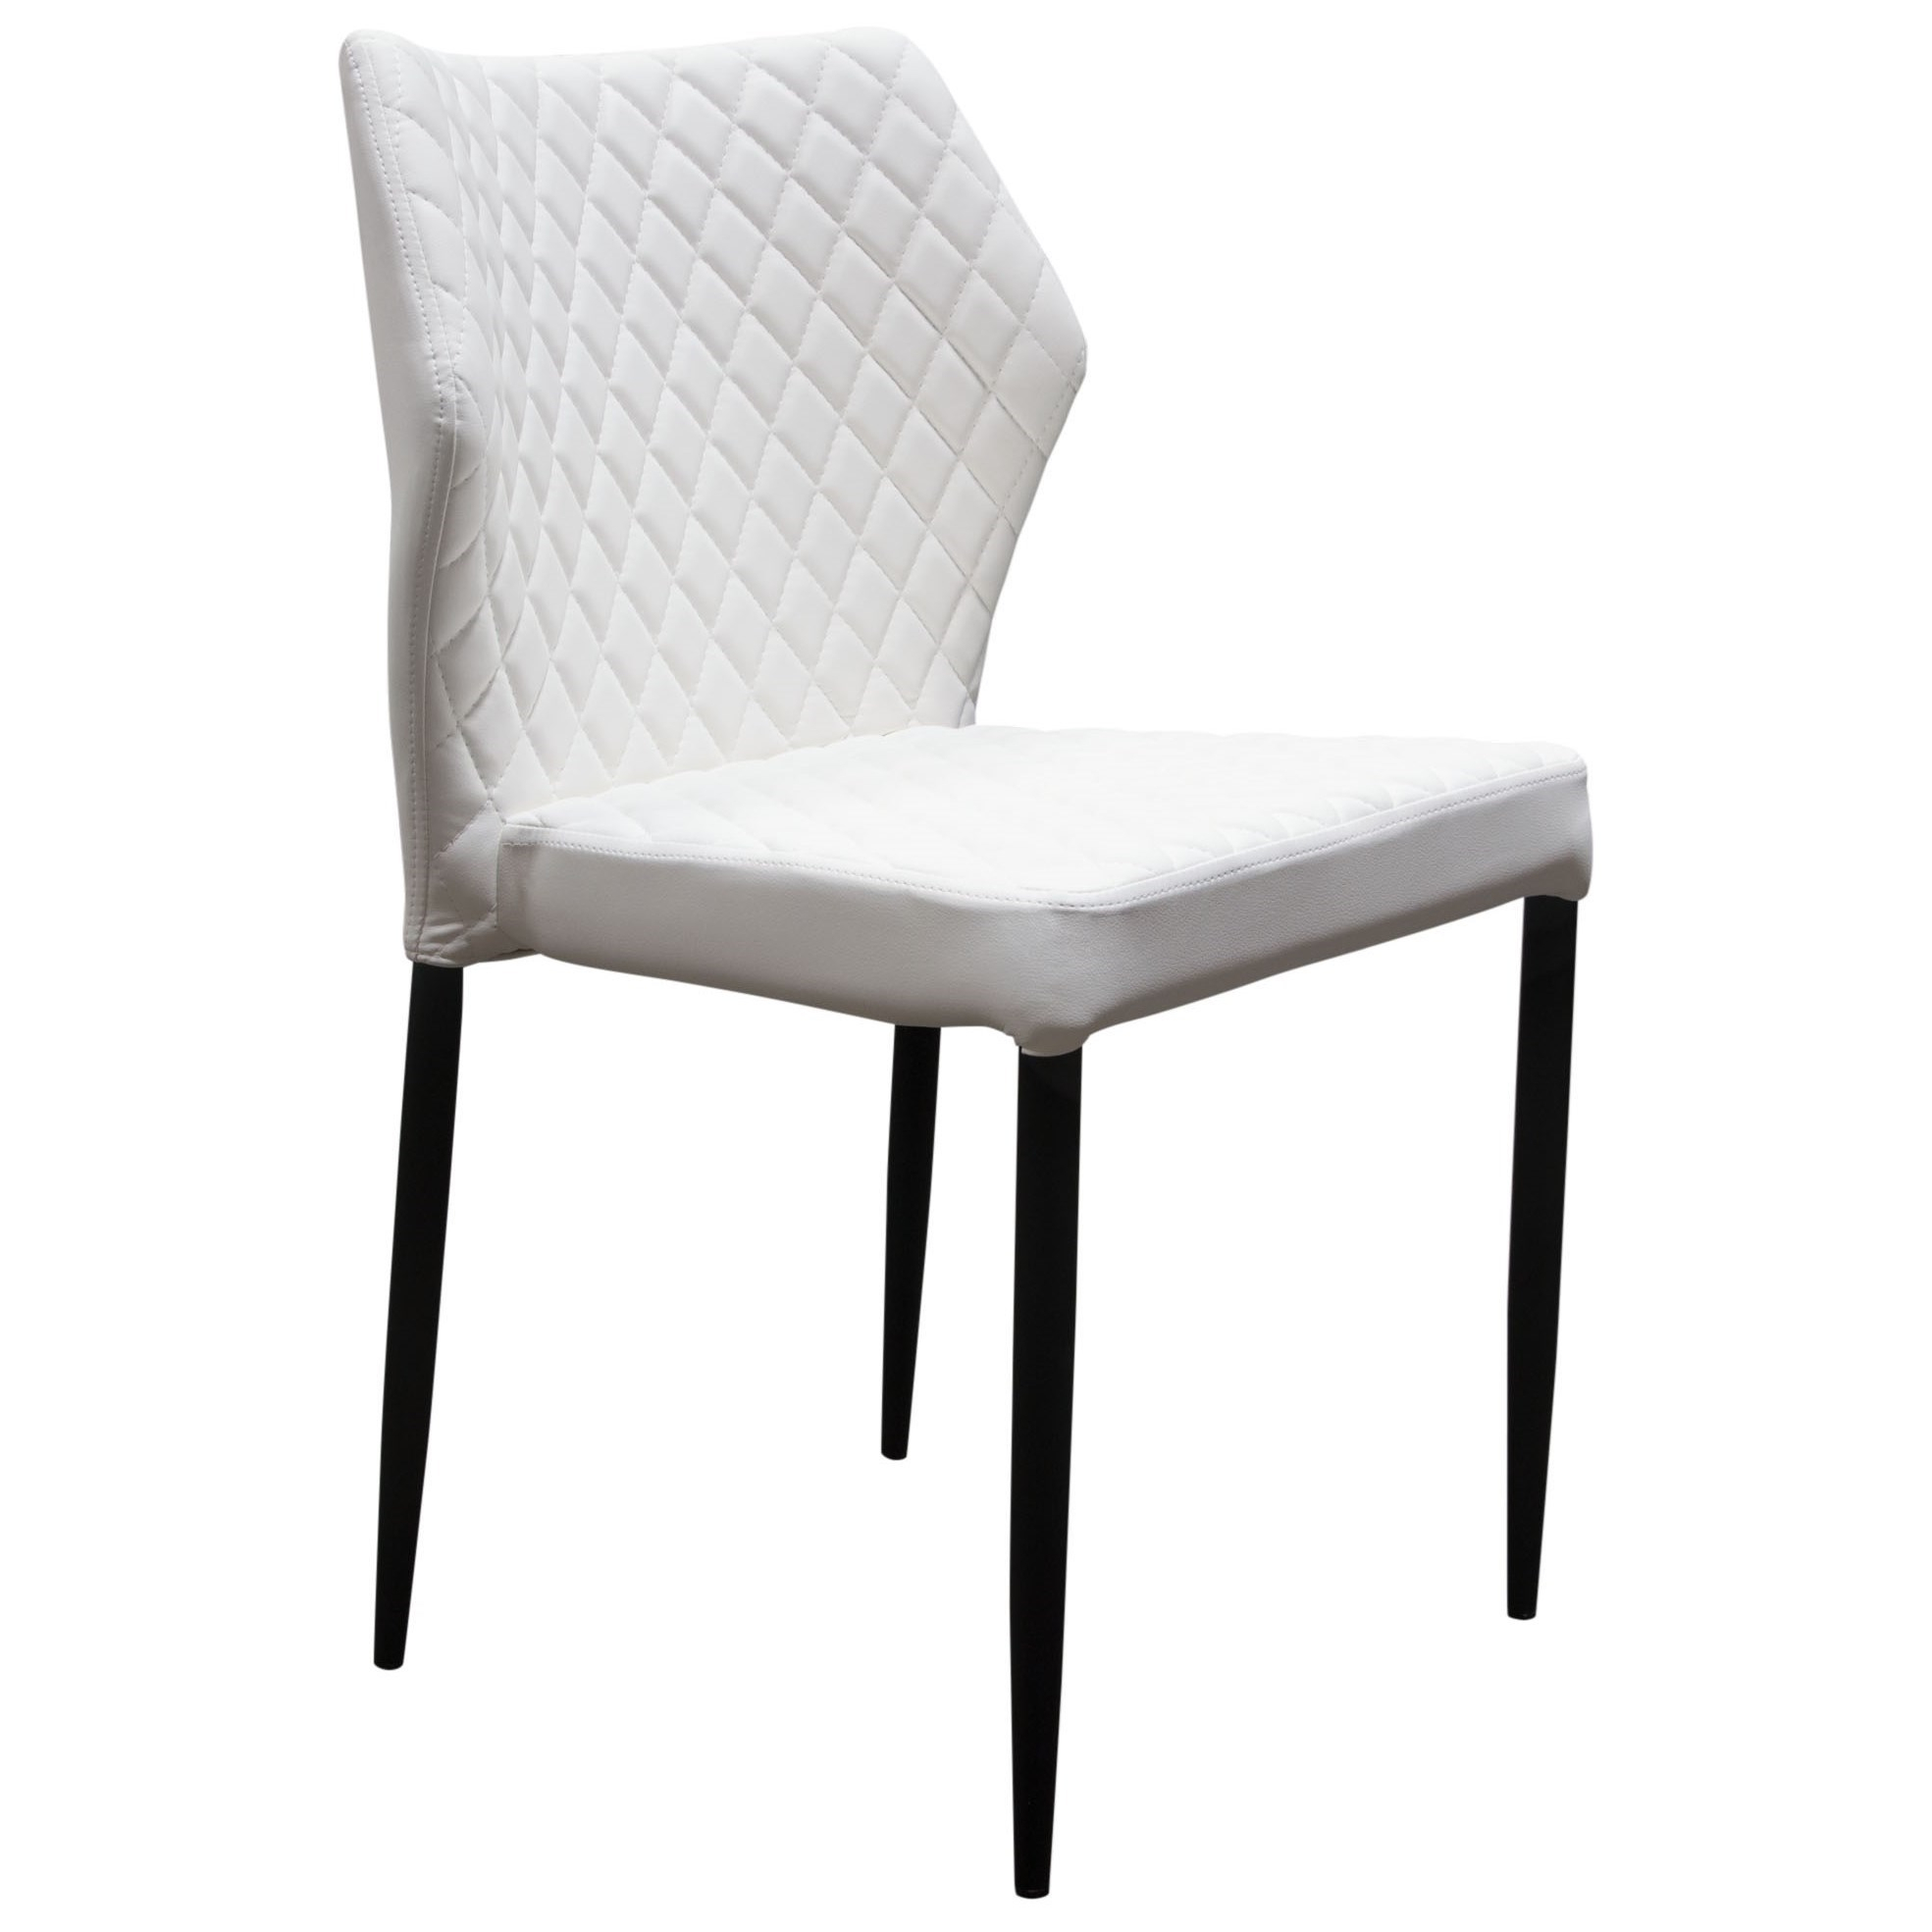 Diamond Sofa Milo Set Of Four Dining Side Chairs | Red Knot | Dining Throughout Milo Sofa Chairs (Image 8 of 25)